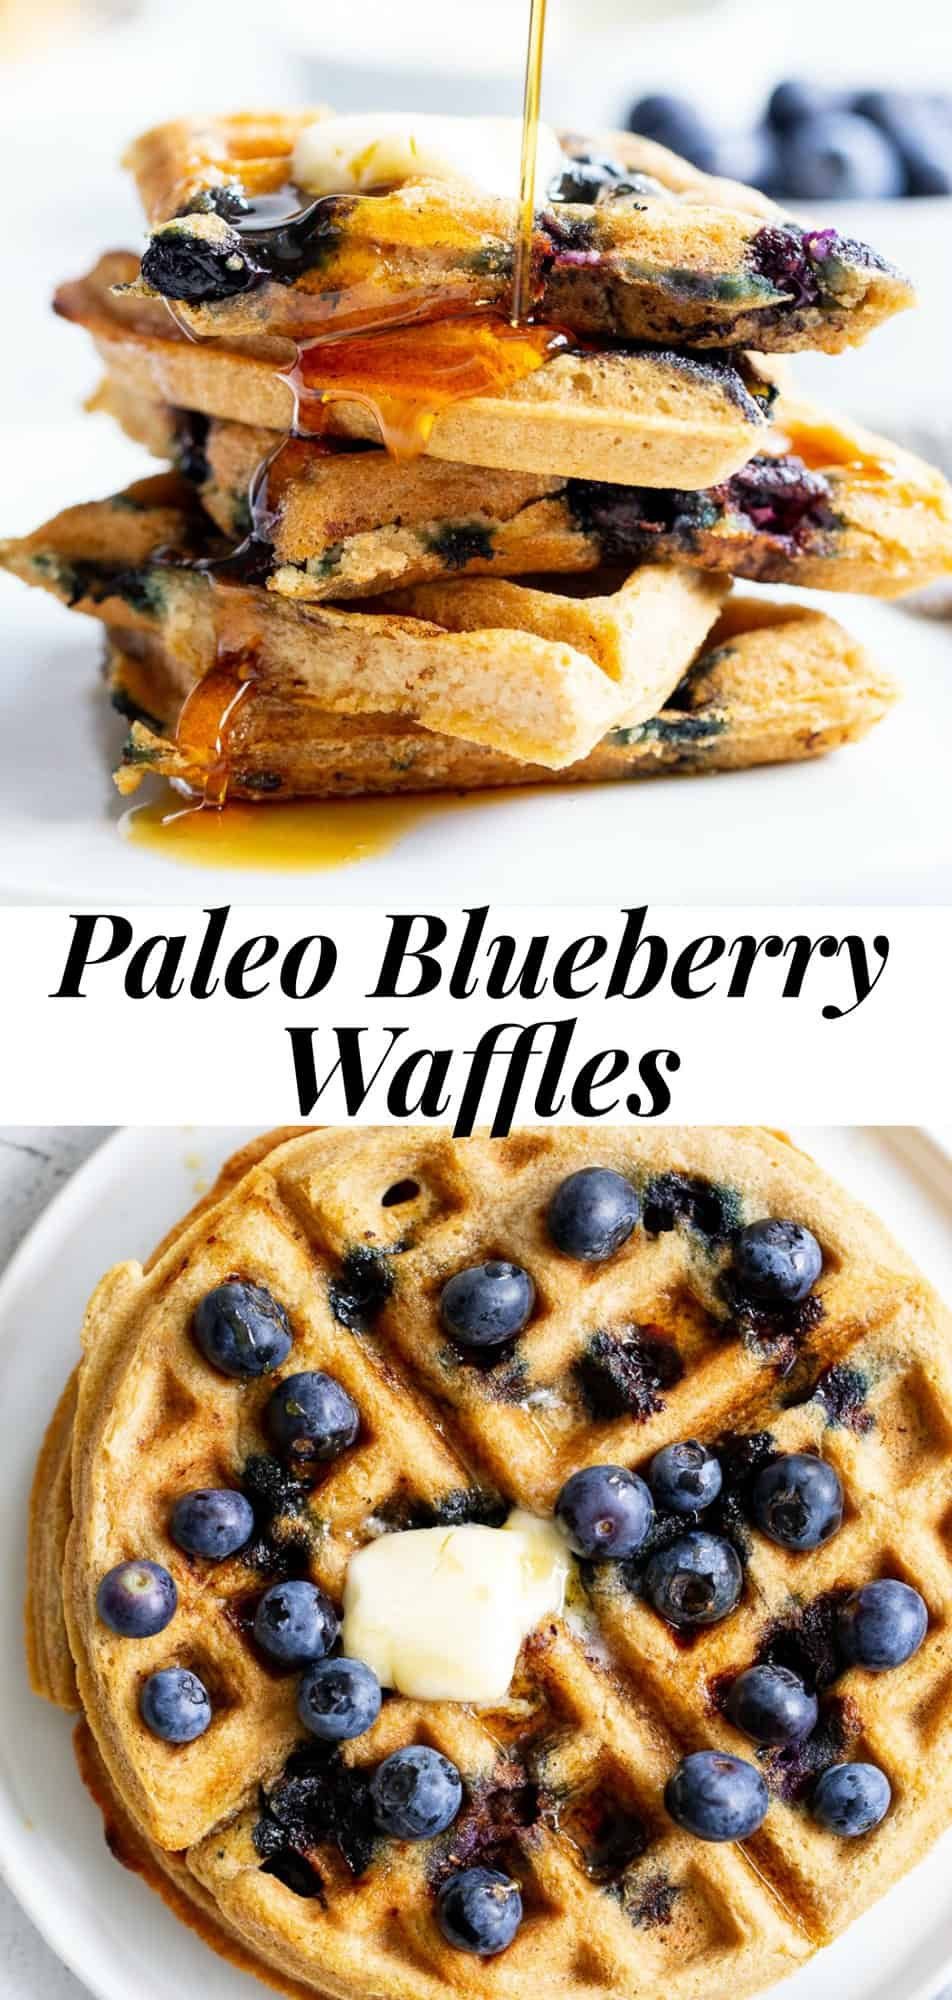 These classic paleo blueberry waffles are crisp on the outside, soft and fluffy on the inside, freezable, and family approved!  They're gluten free, grain free, dairy free, refined sugar free, and easy to make. #paleo #cleaneating #grainfree #glutenfree #waffles #breakfast